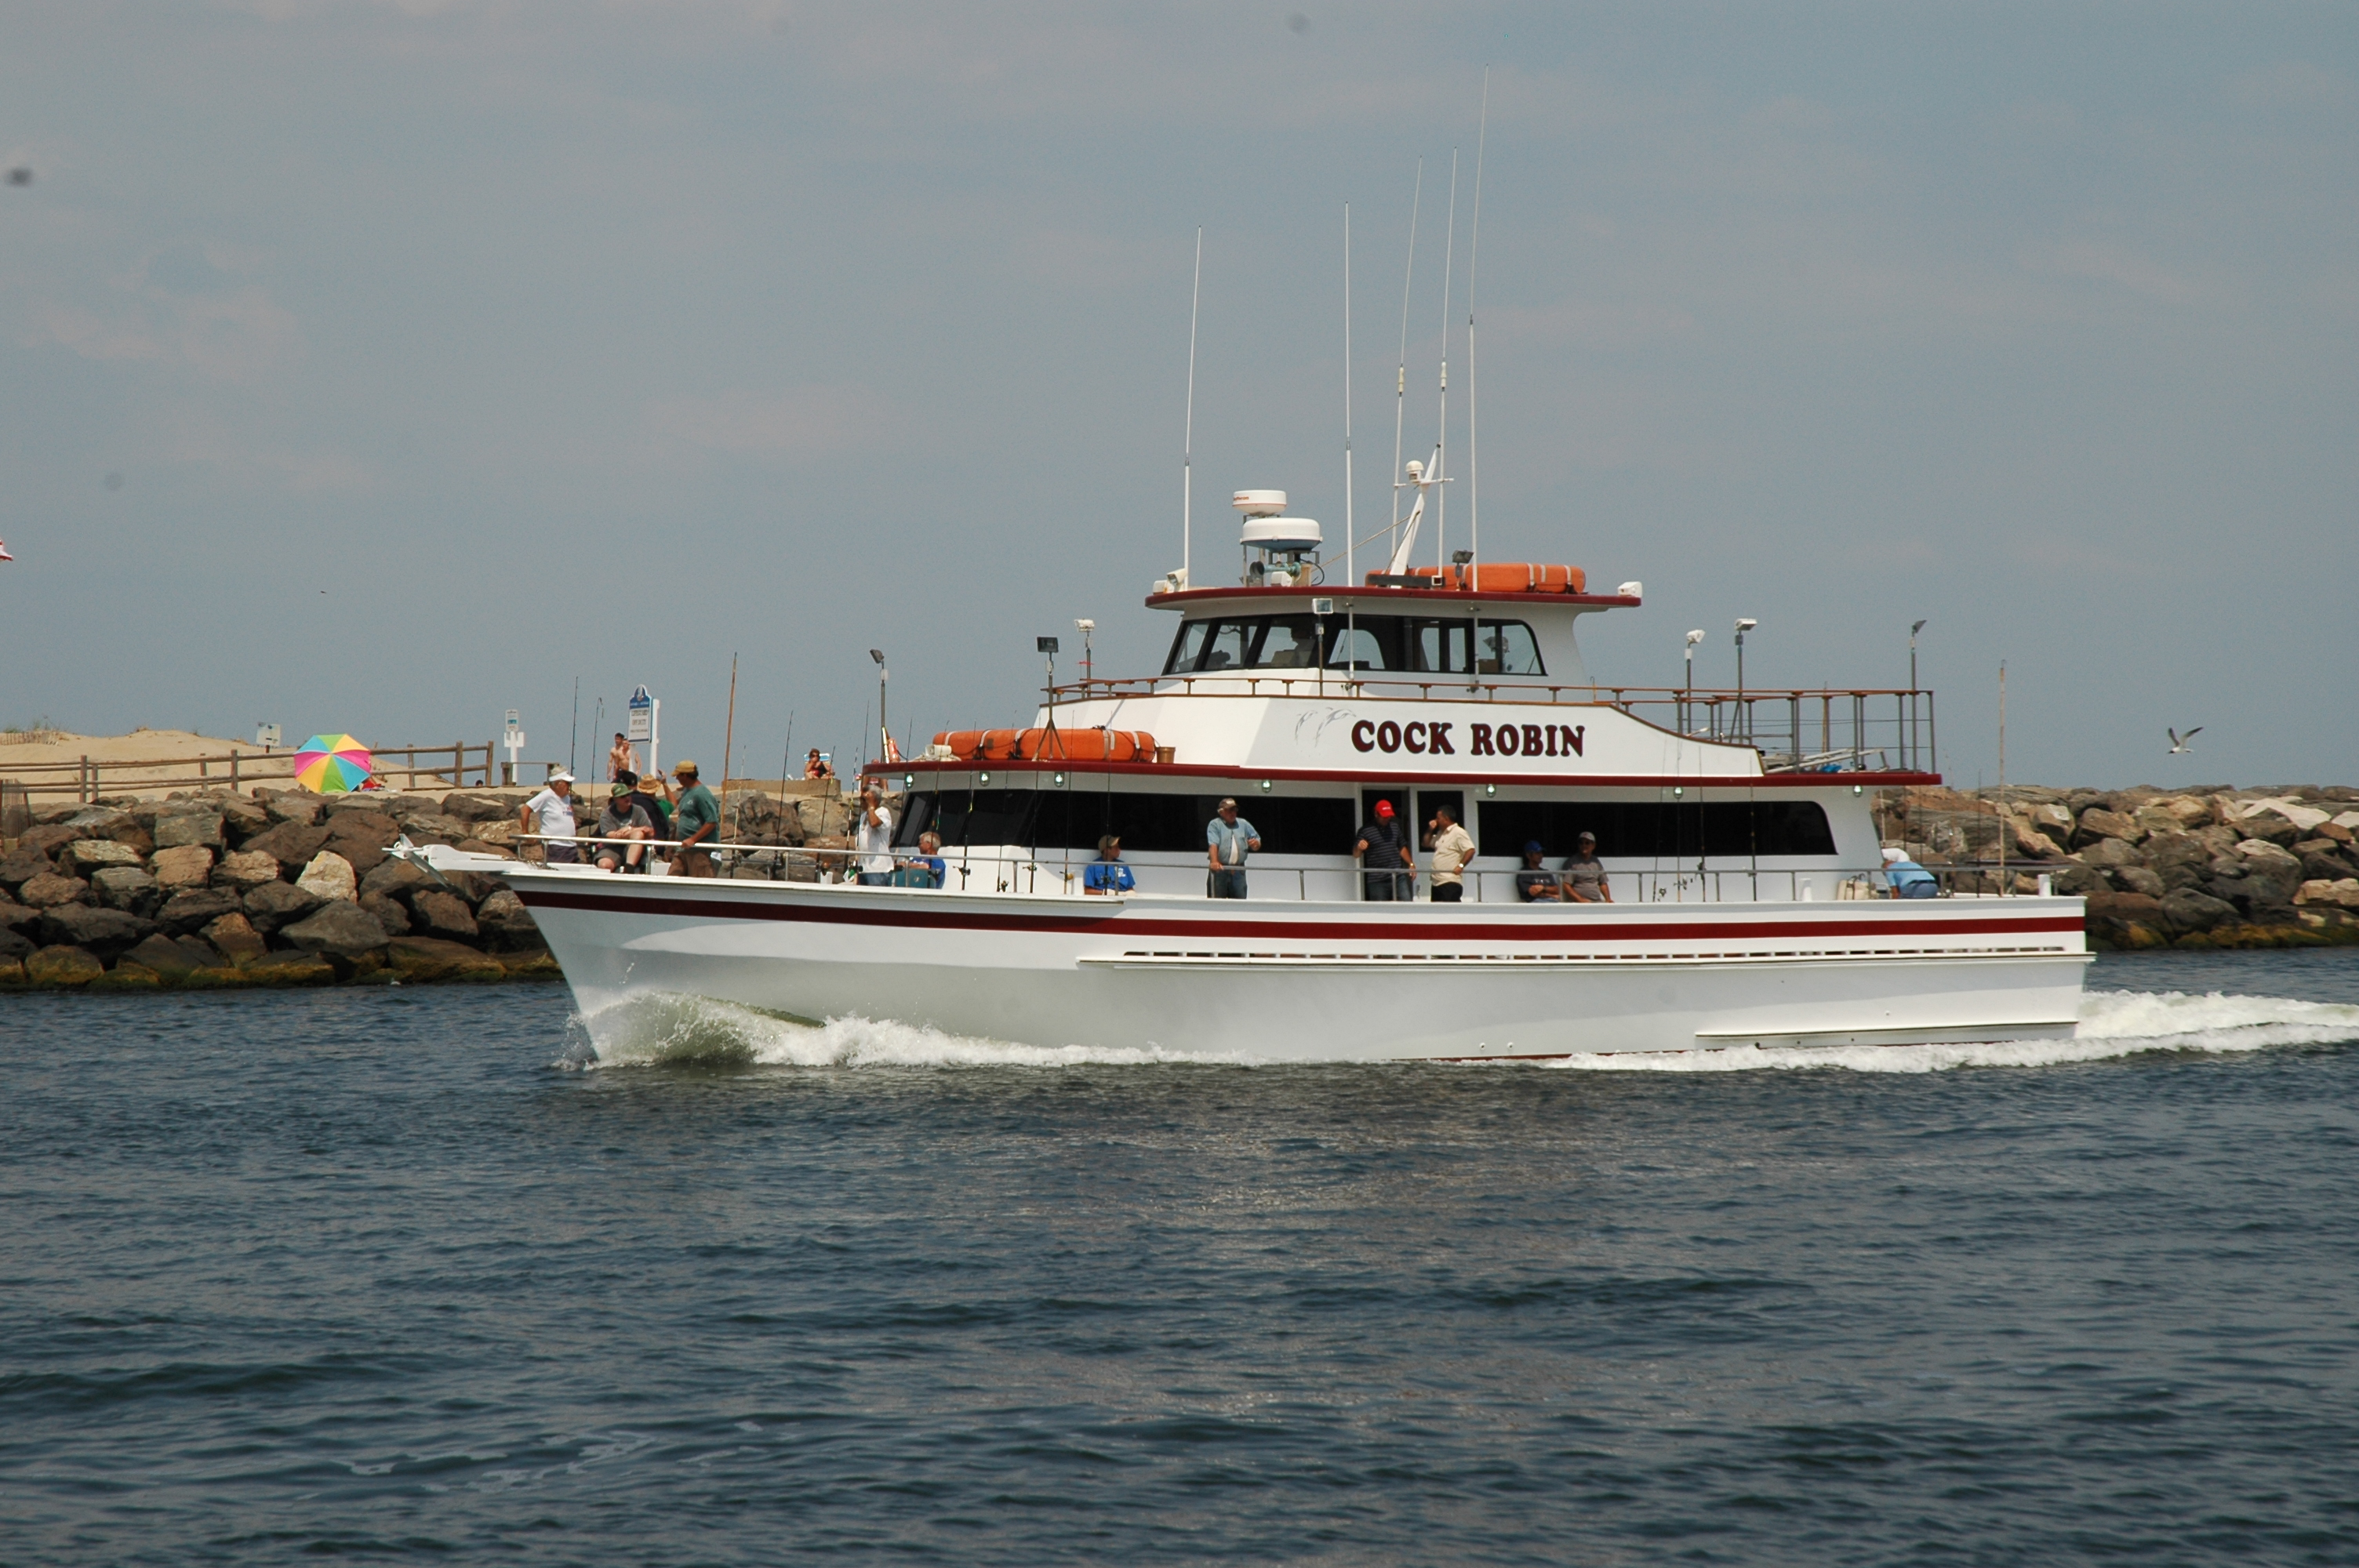 Cock robin party boat